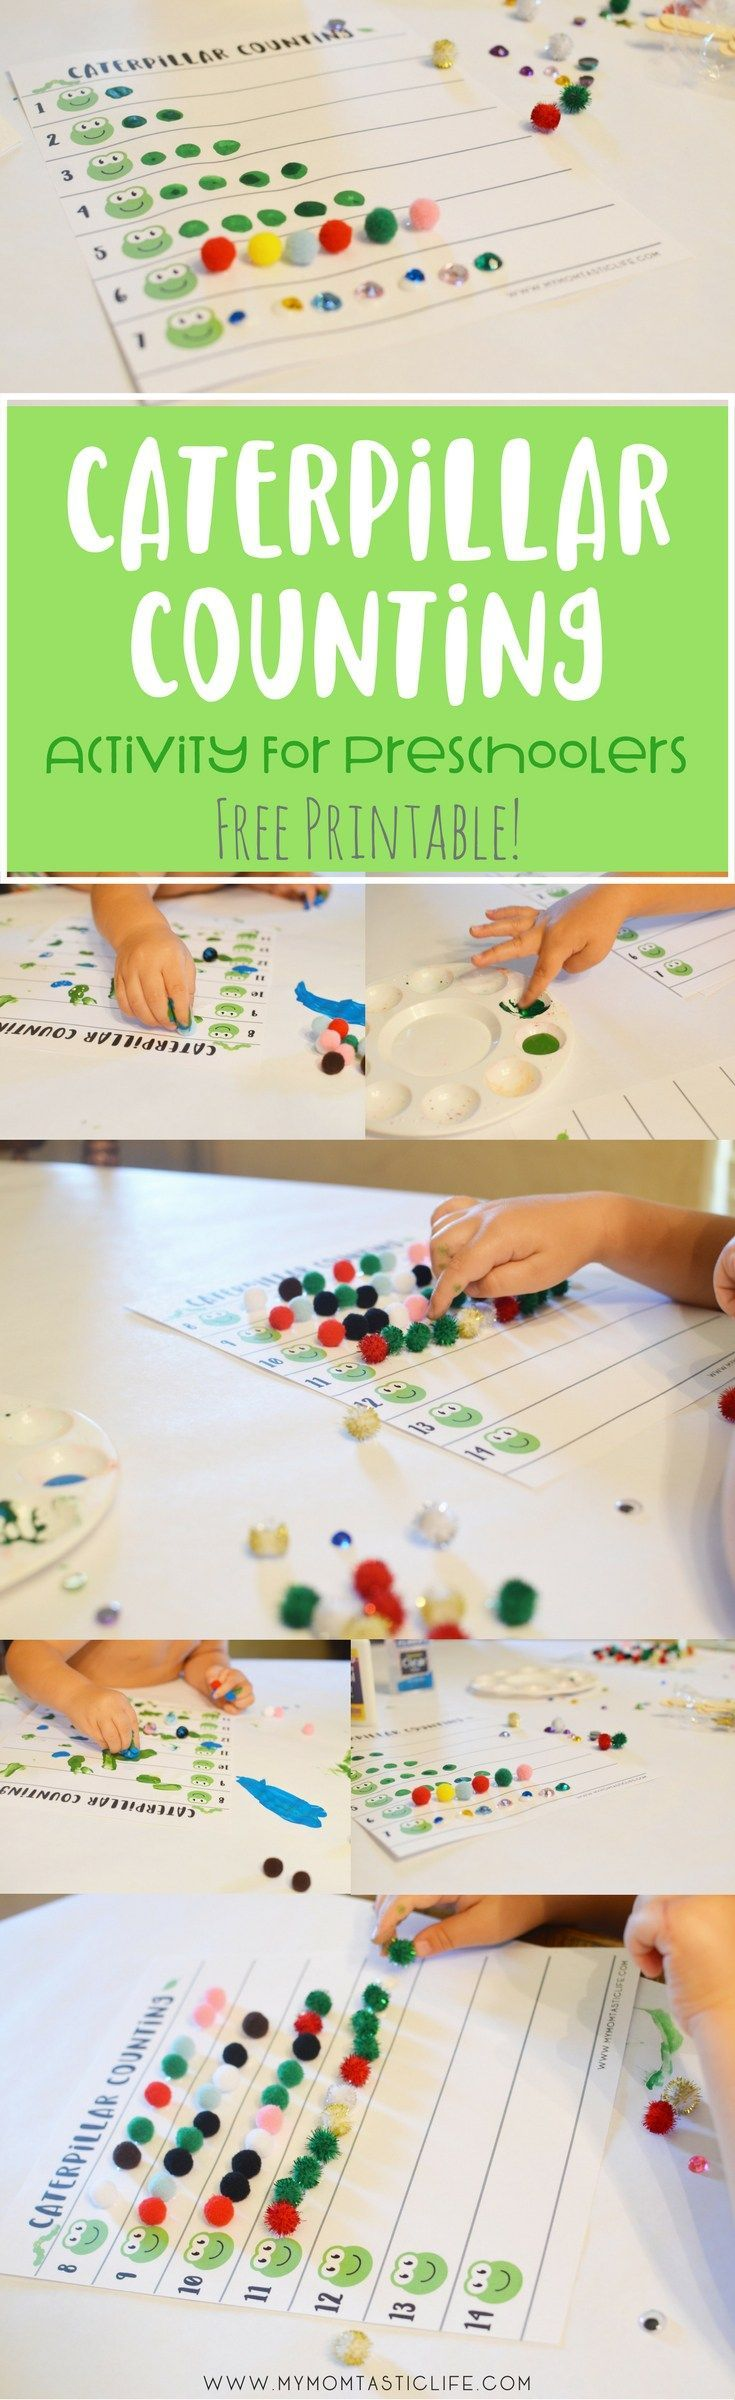 This activity is great for preschoolers, especially if you're doing a bug theme like us! It combines fine motor development and counting into one fun and easy activity. Download your copy of the worksheet for free!  Printables | Activities for Kids | Activities for Toddlers | Bug Theme Preschool Ideas | Crafts for Kids | Learning Activities | Worksheets | Free